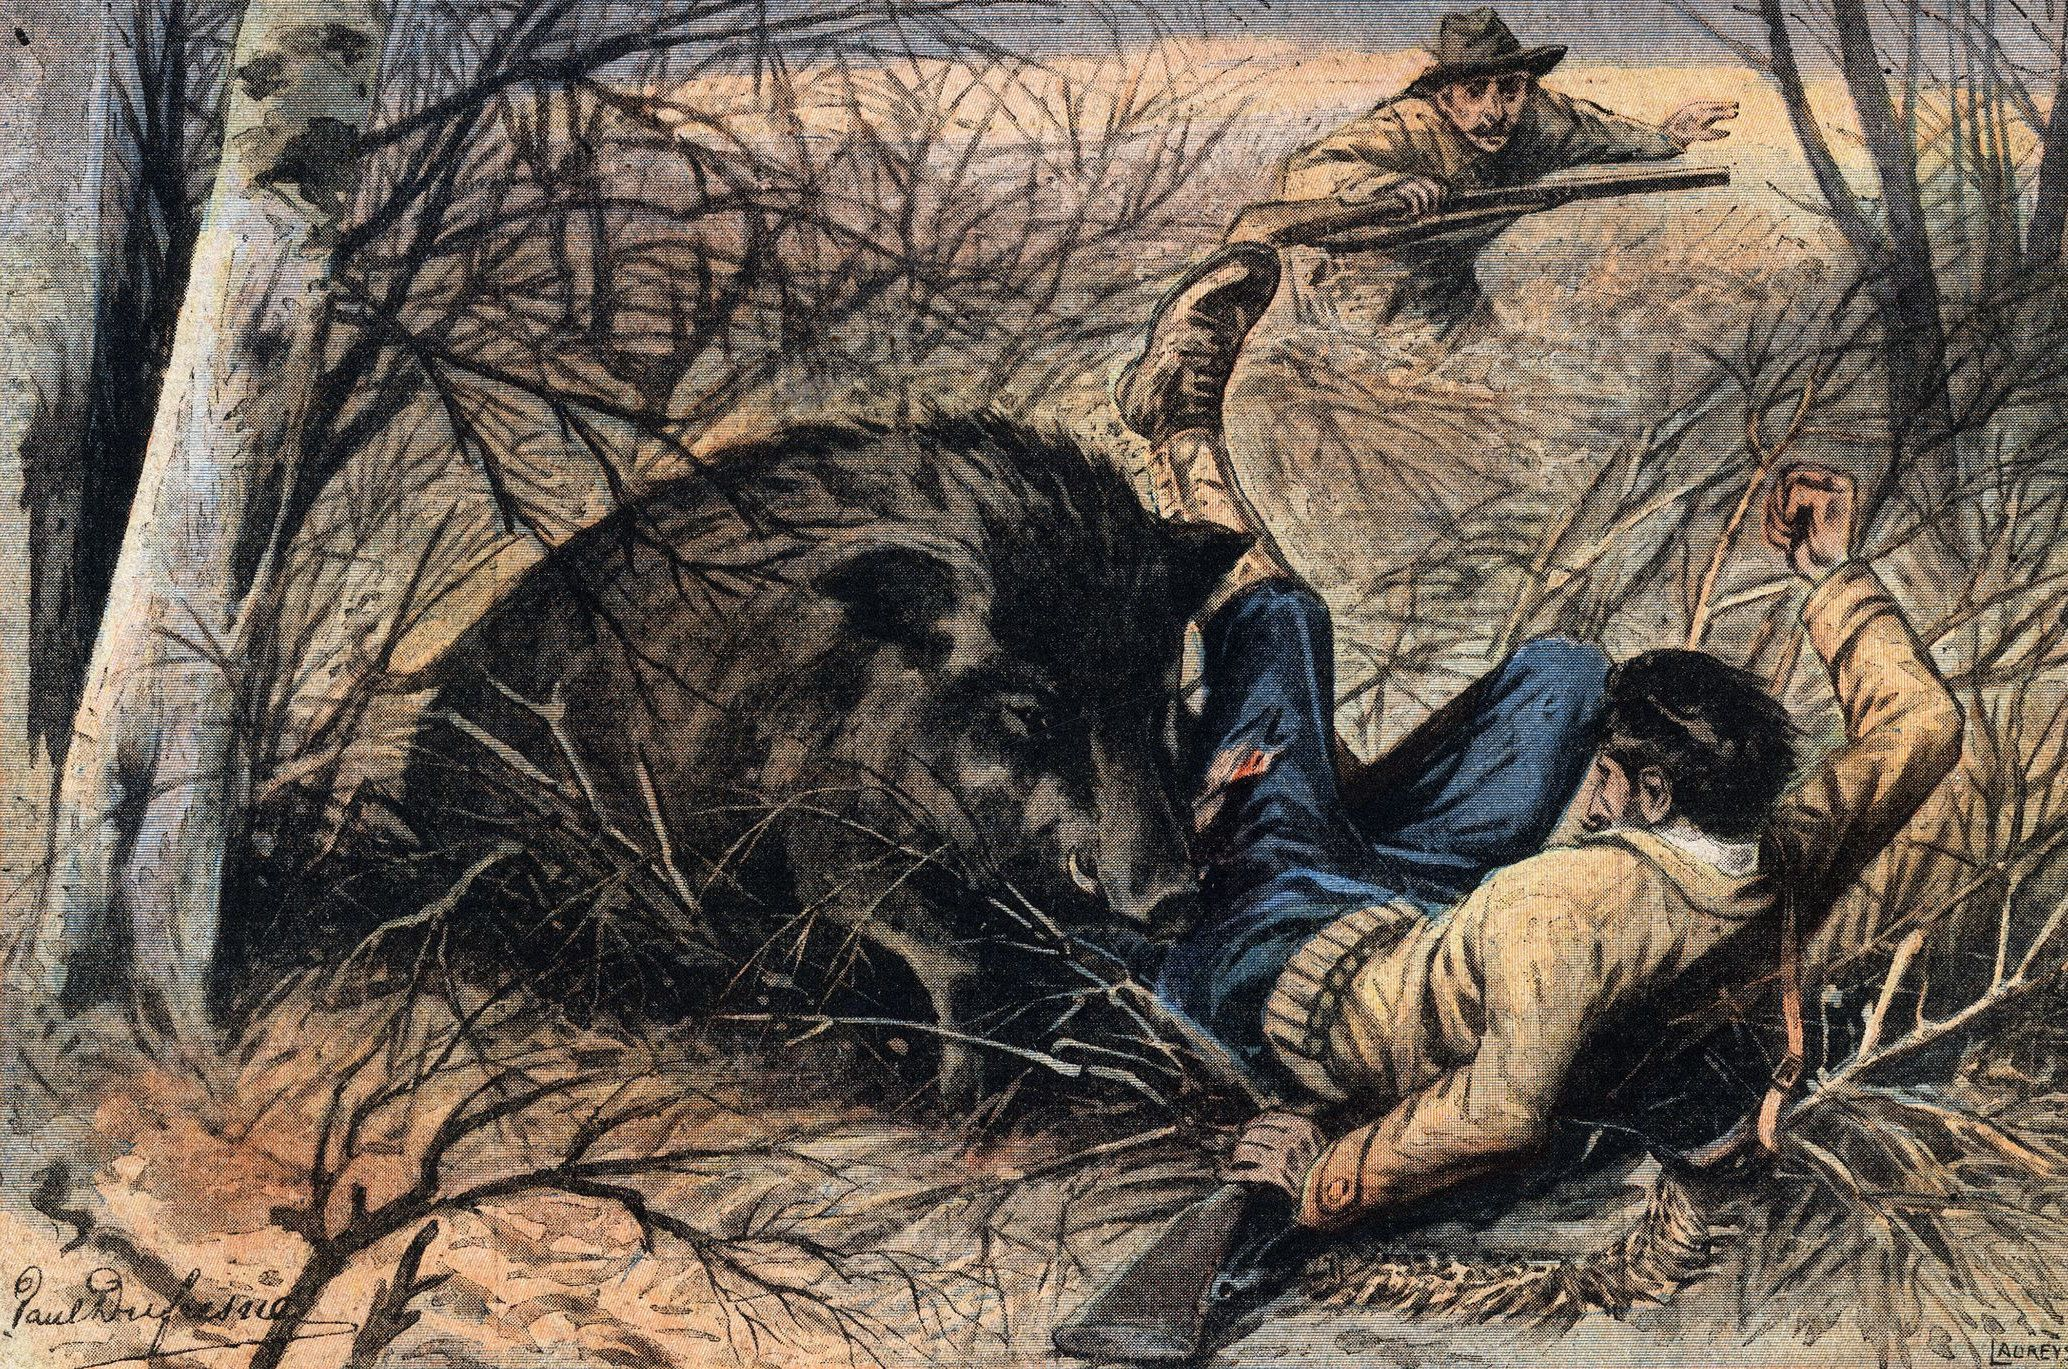 Was a 1,800-Lb. Wild Boar Really Shot in Conroe, Texas?